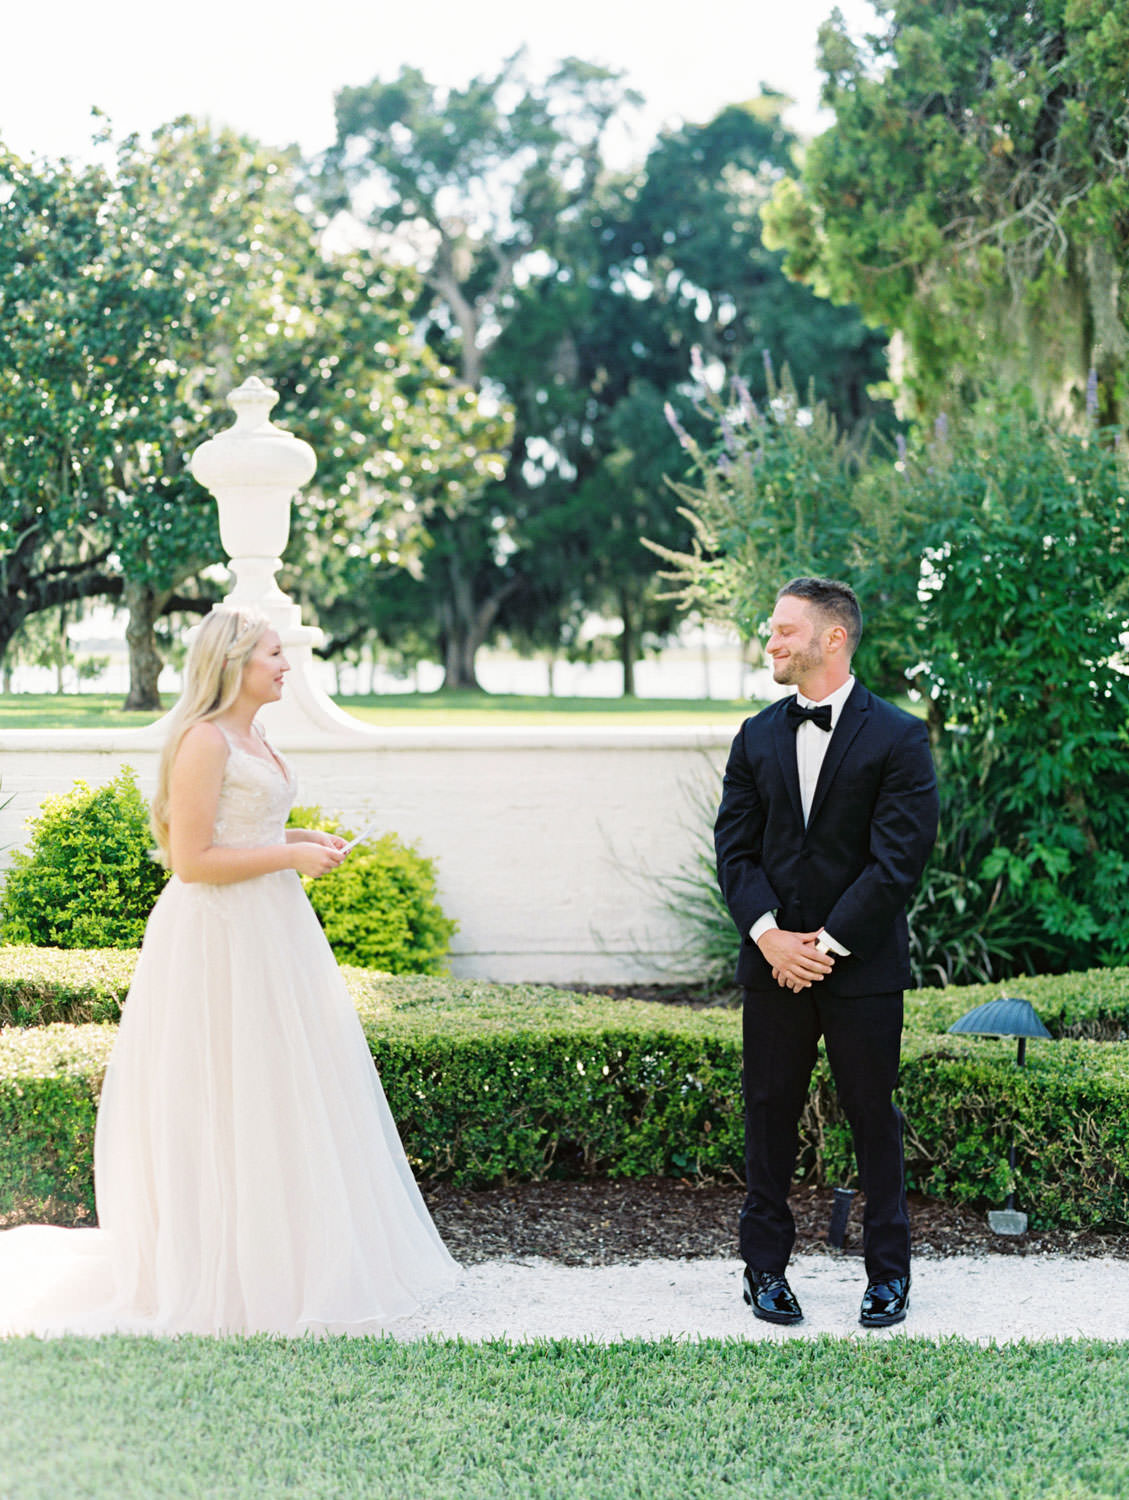 Bride in a champagne gown with a floral tiara headband first look with groom in black tuxedo. Film photography at Jekyll Island Club Resort Wedding by Cavin Elizabeth Photography